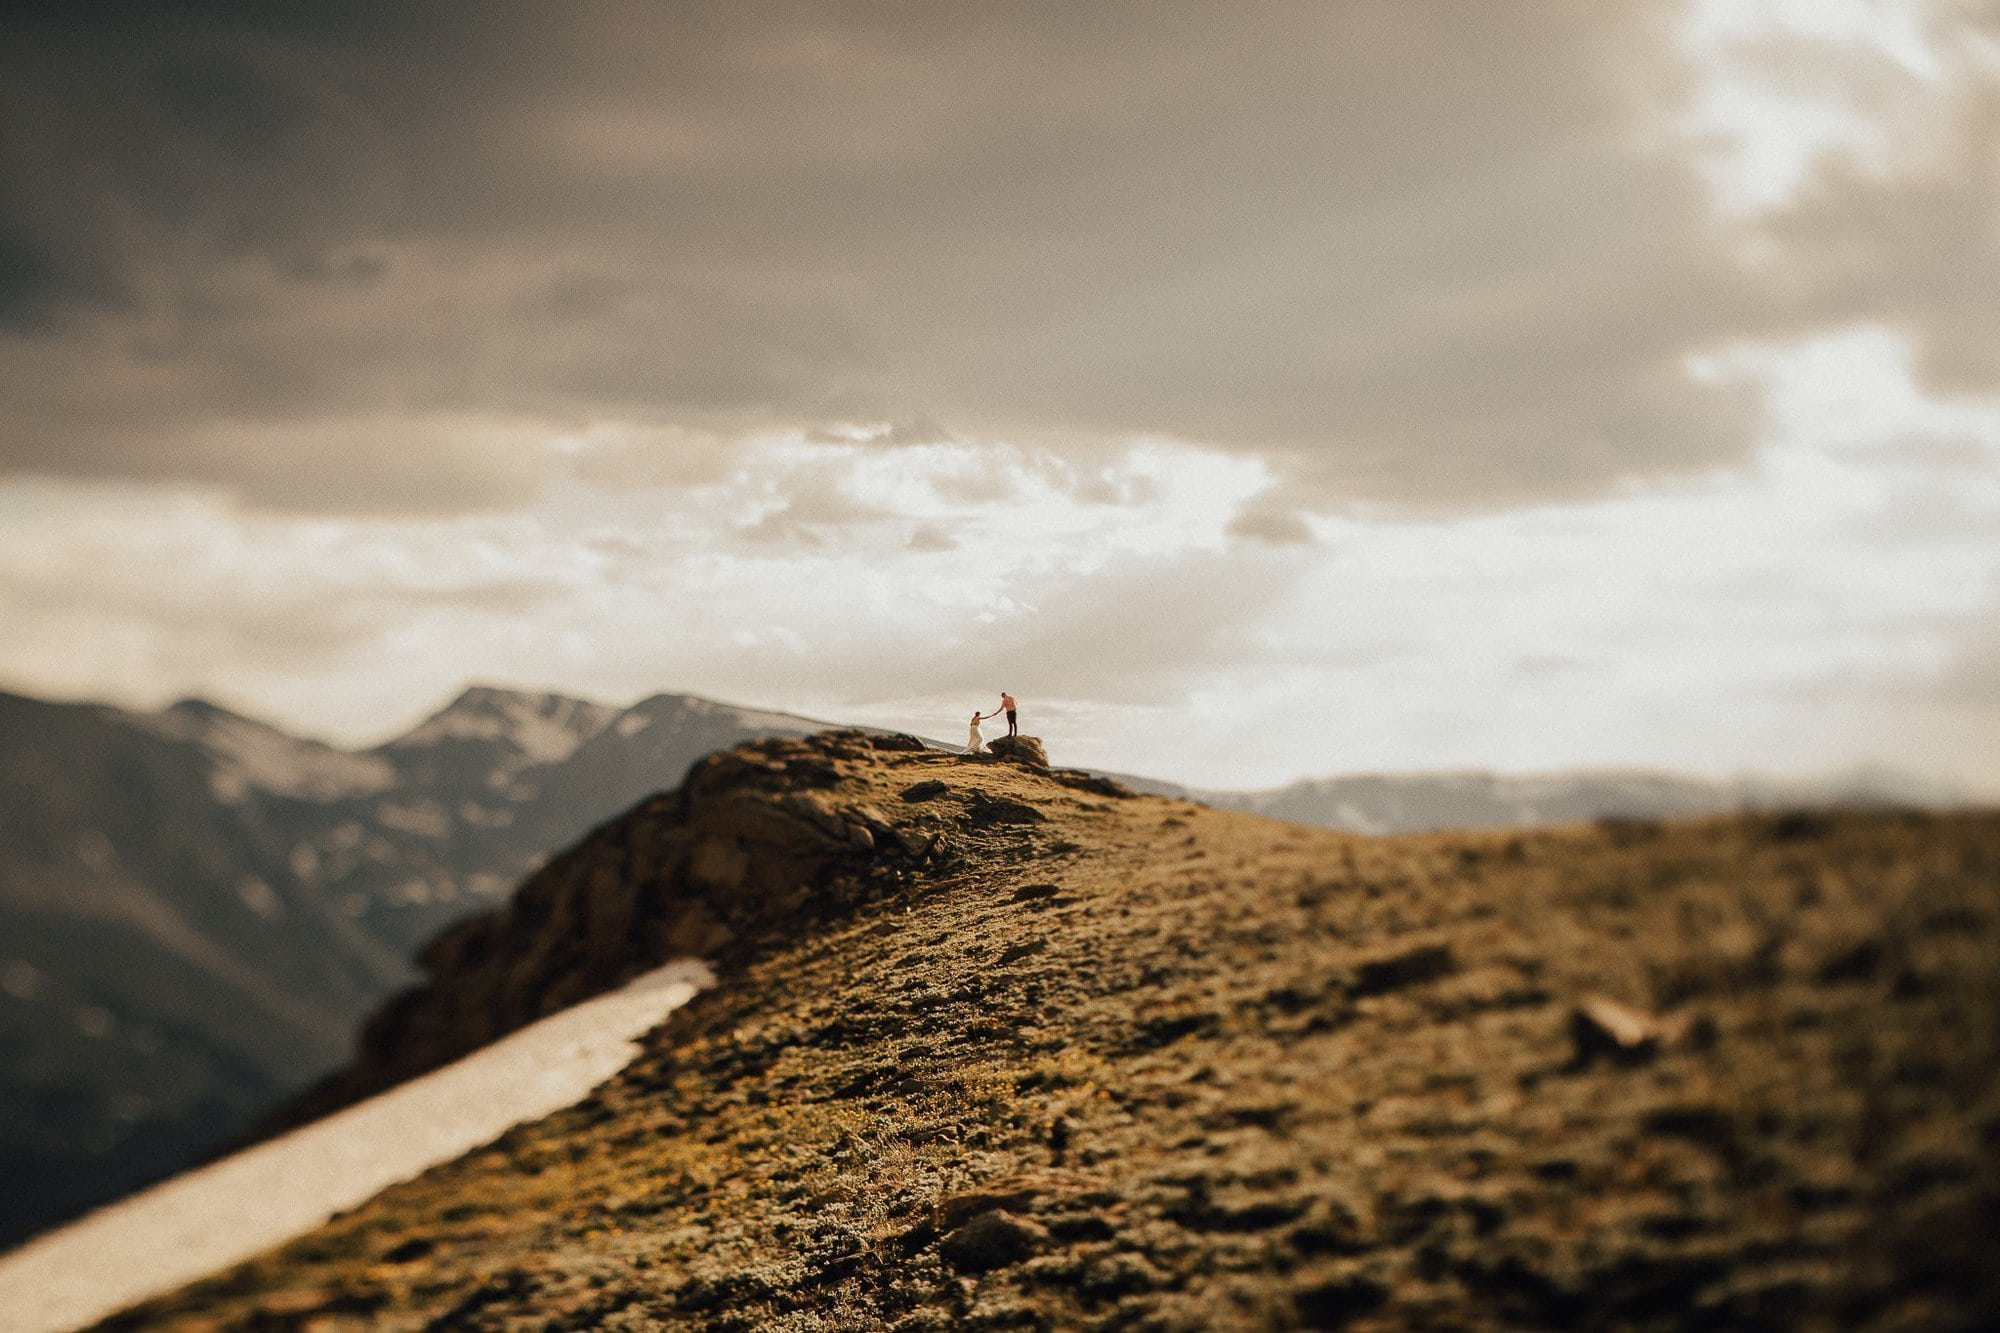 ESTES PARK WEDDING PHOTOGRAPHY |TRAIL RIDGE ROAD ENGAGEMENT | JUSTYNA E BUTLER PHOTOGRAPHY | ROCKY MOUNTAIN NATIONAL PARK ENGAGEMENT |COLORADO MOUNTAIN ENGAGEMENT PHOTOGRAPHER